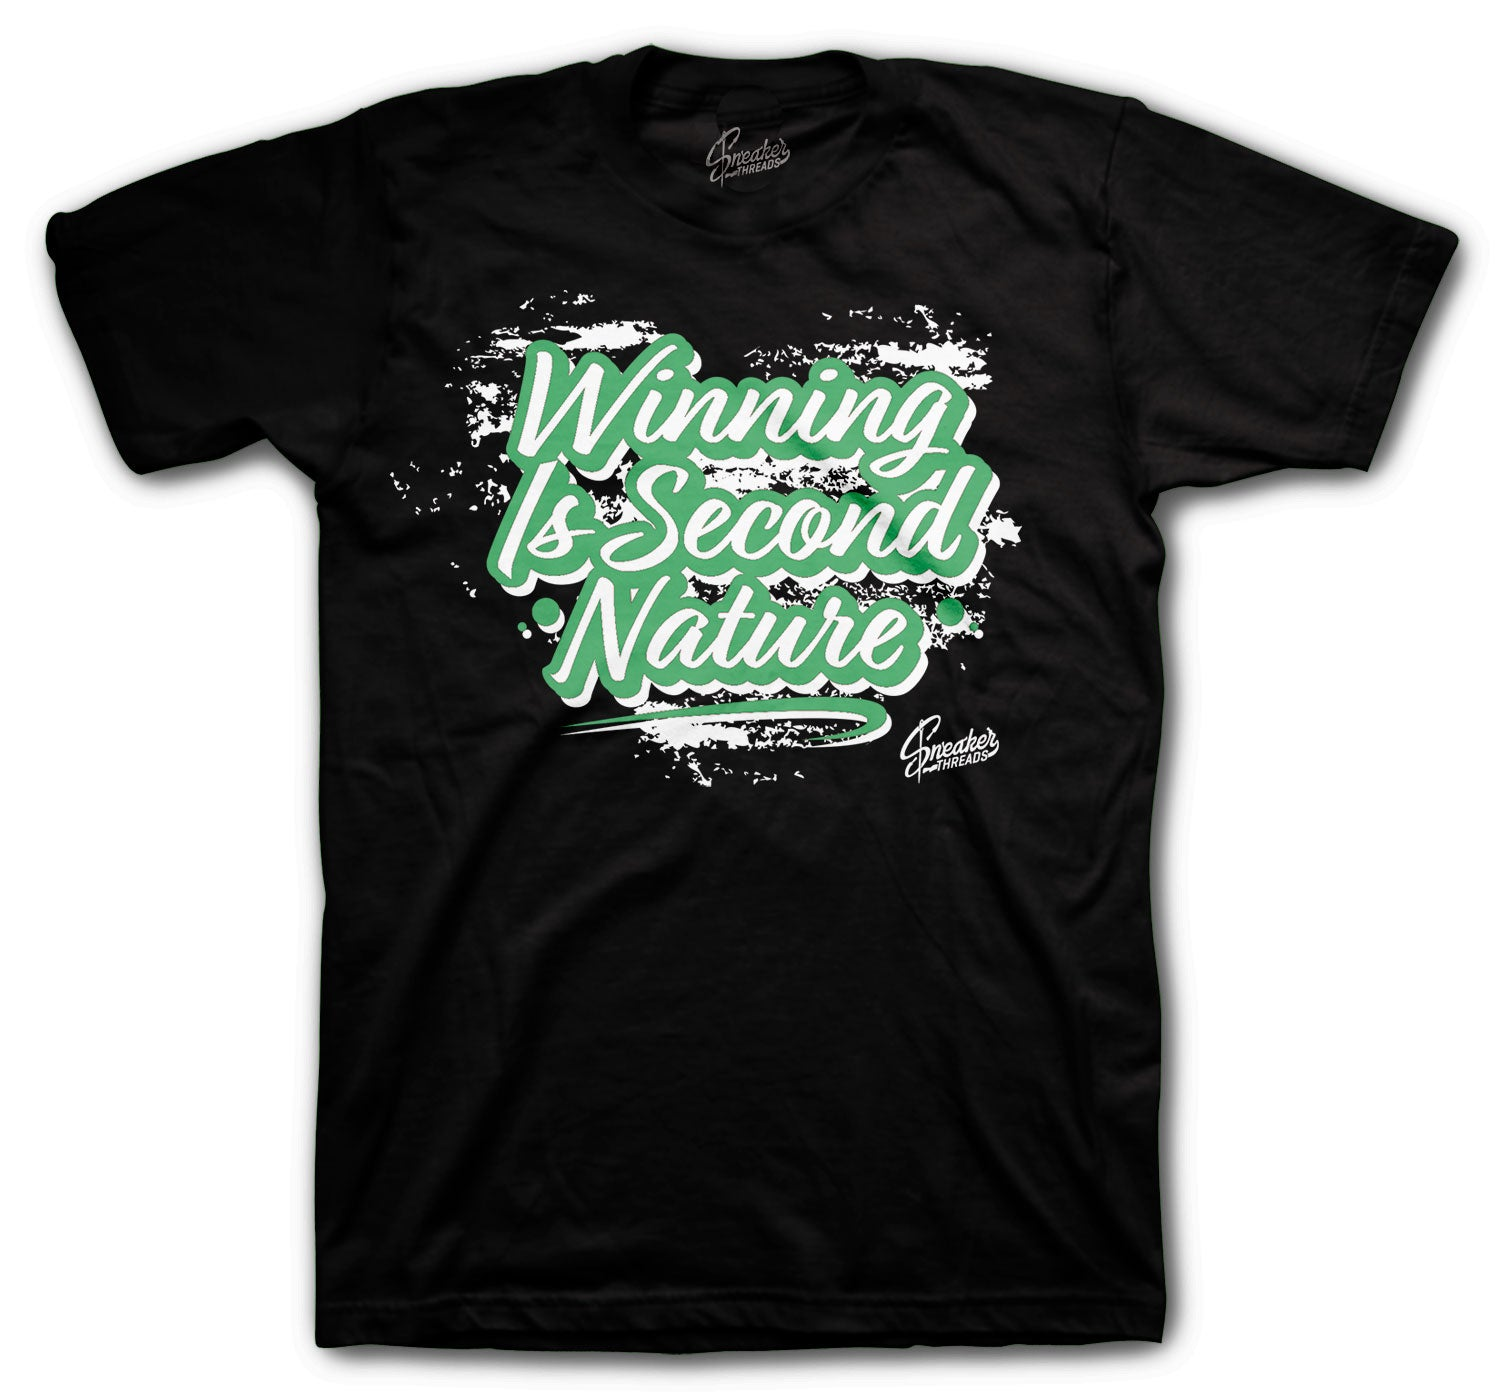 Jordan 1 Zen Green Second Nature Shirt